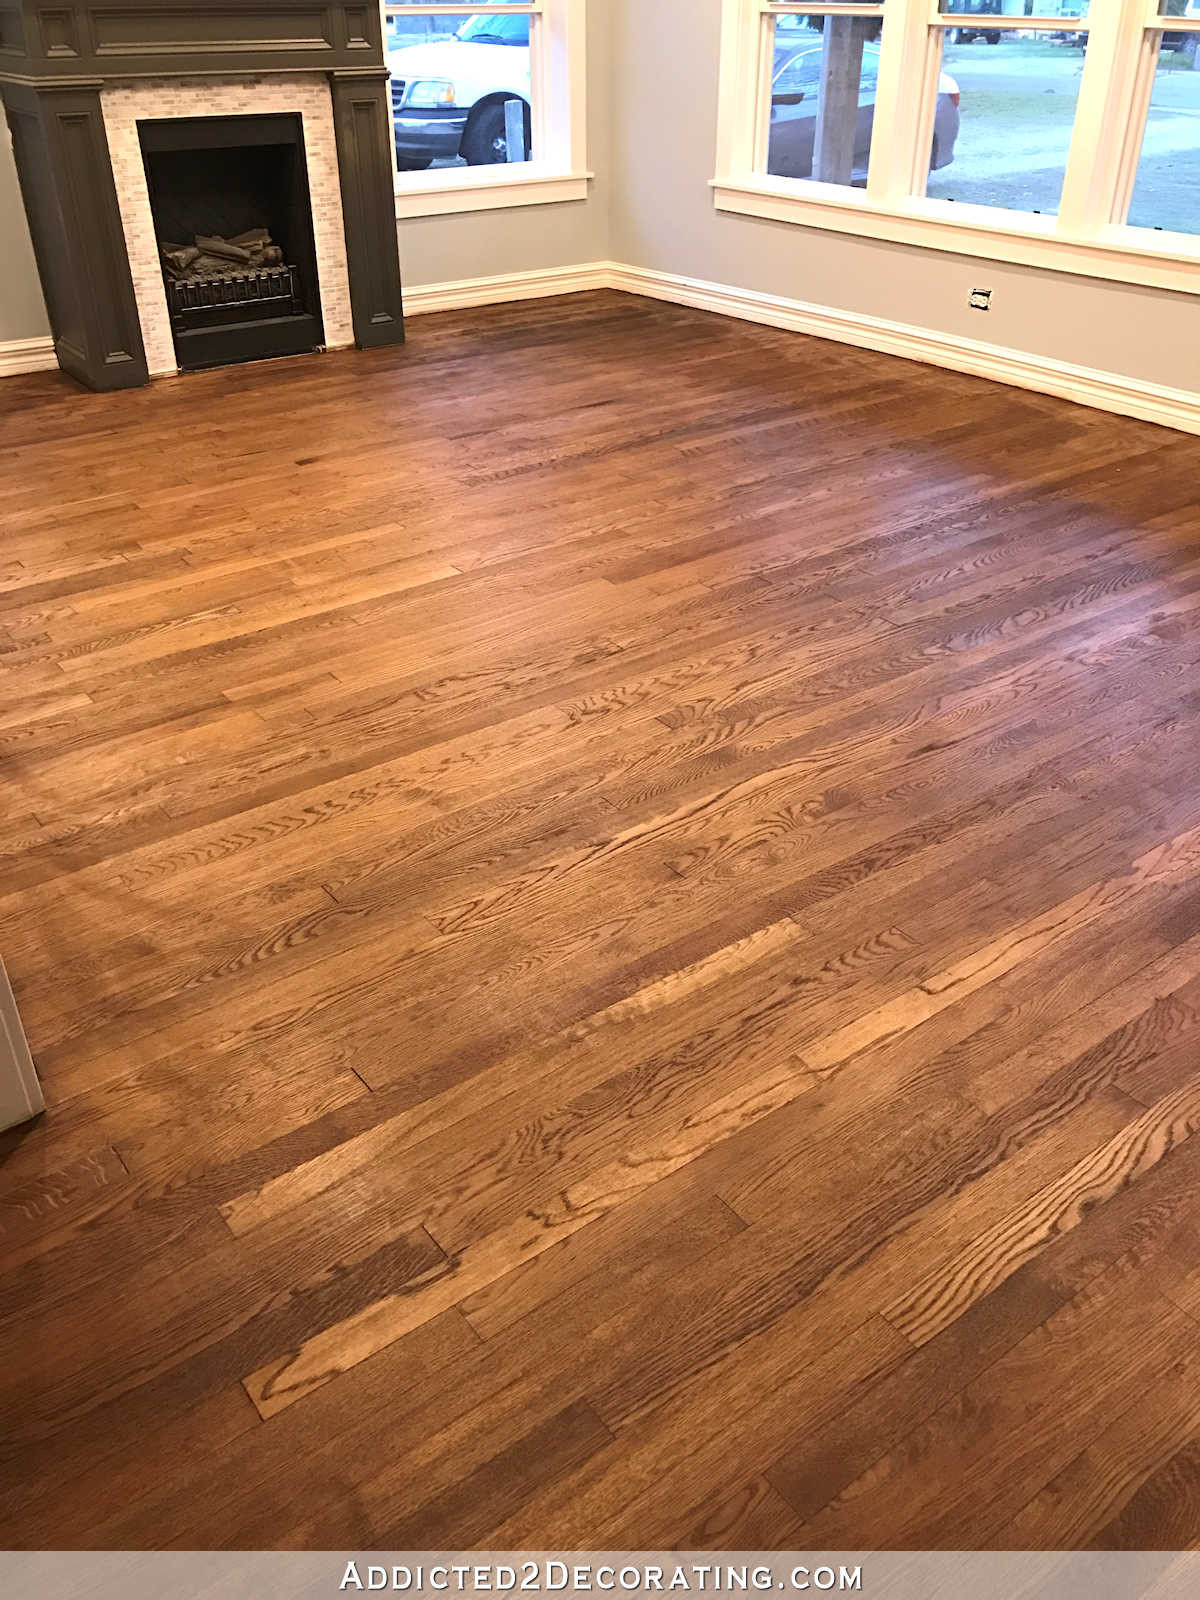 Hardwood Floor Installation Denver Co Of Adventures In Staining My Red Oak Hardwood Floors Products Process with Staining Red Oak Hardwood Floors 8a Living Room and Entryway